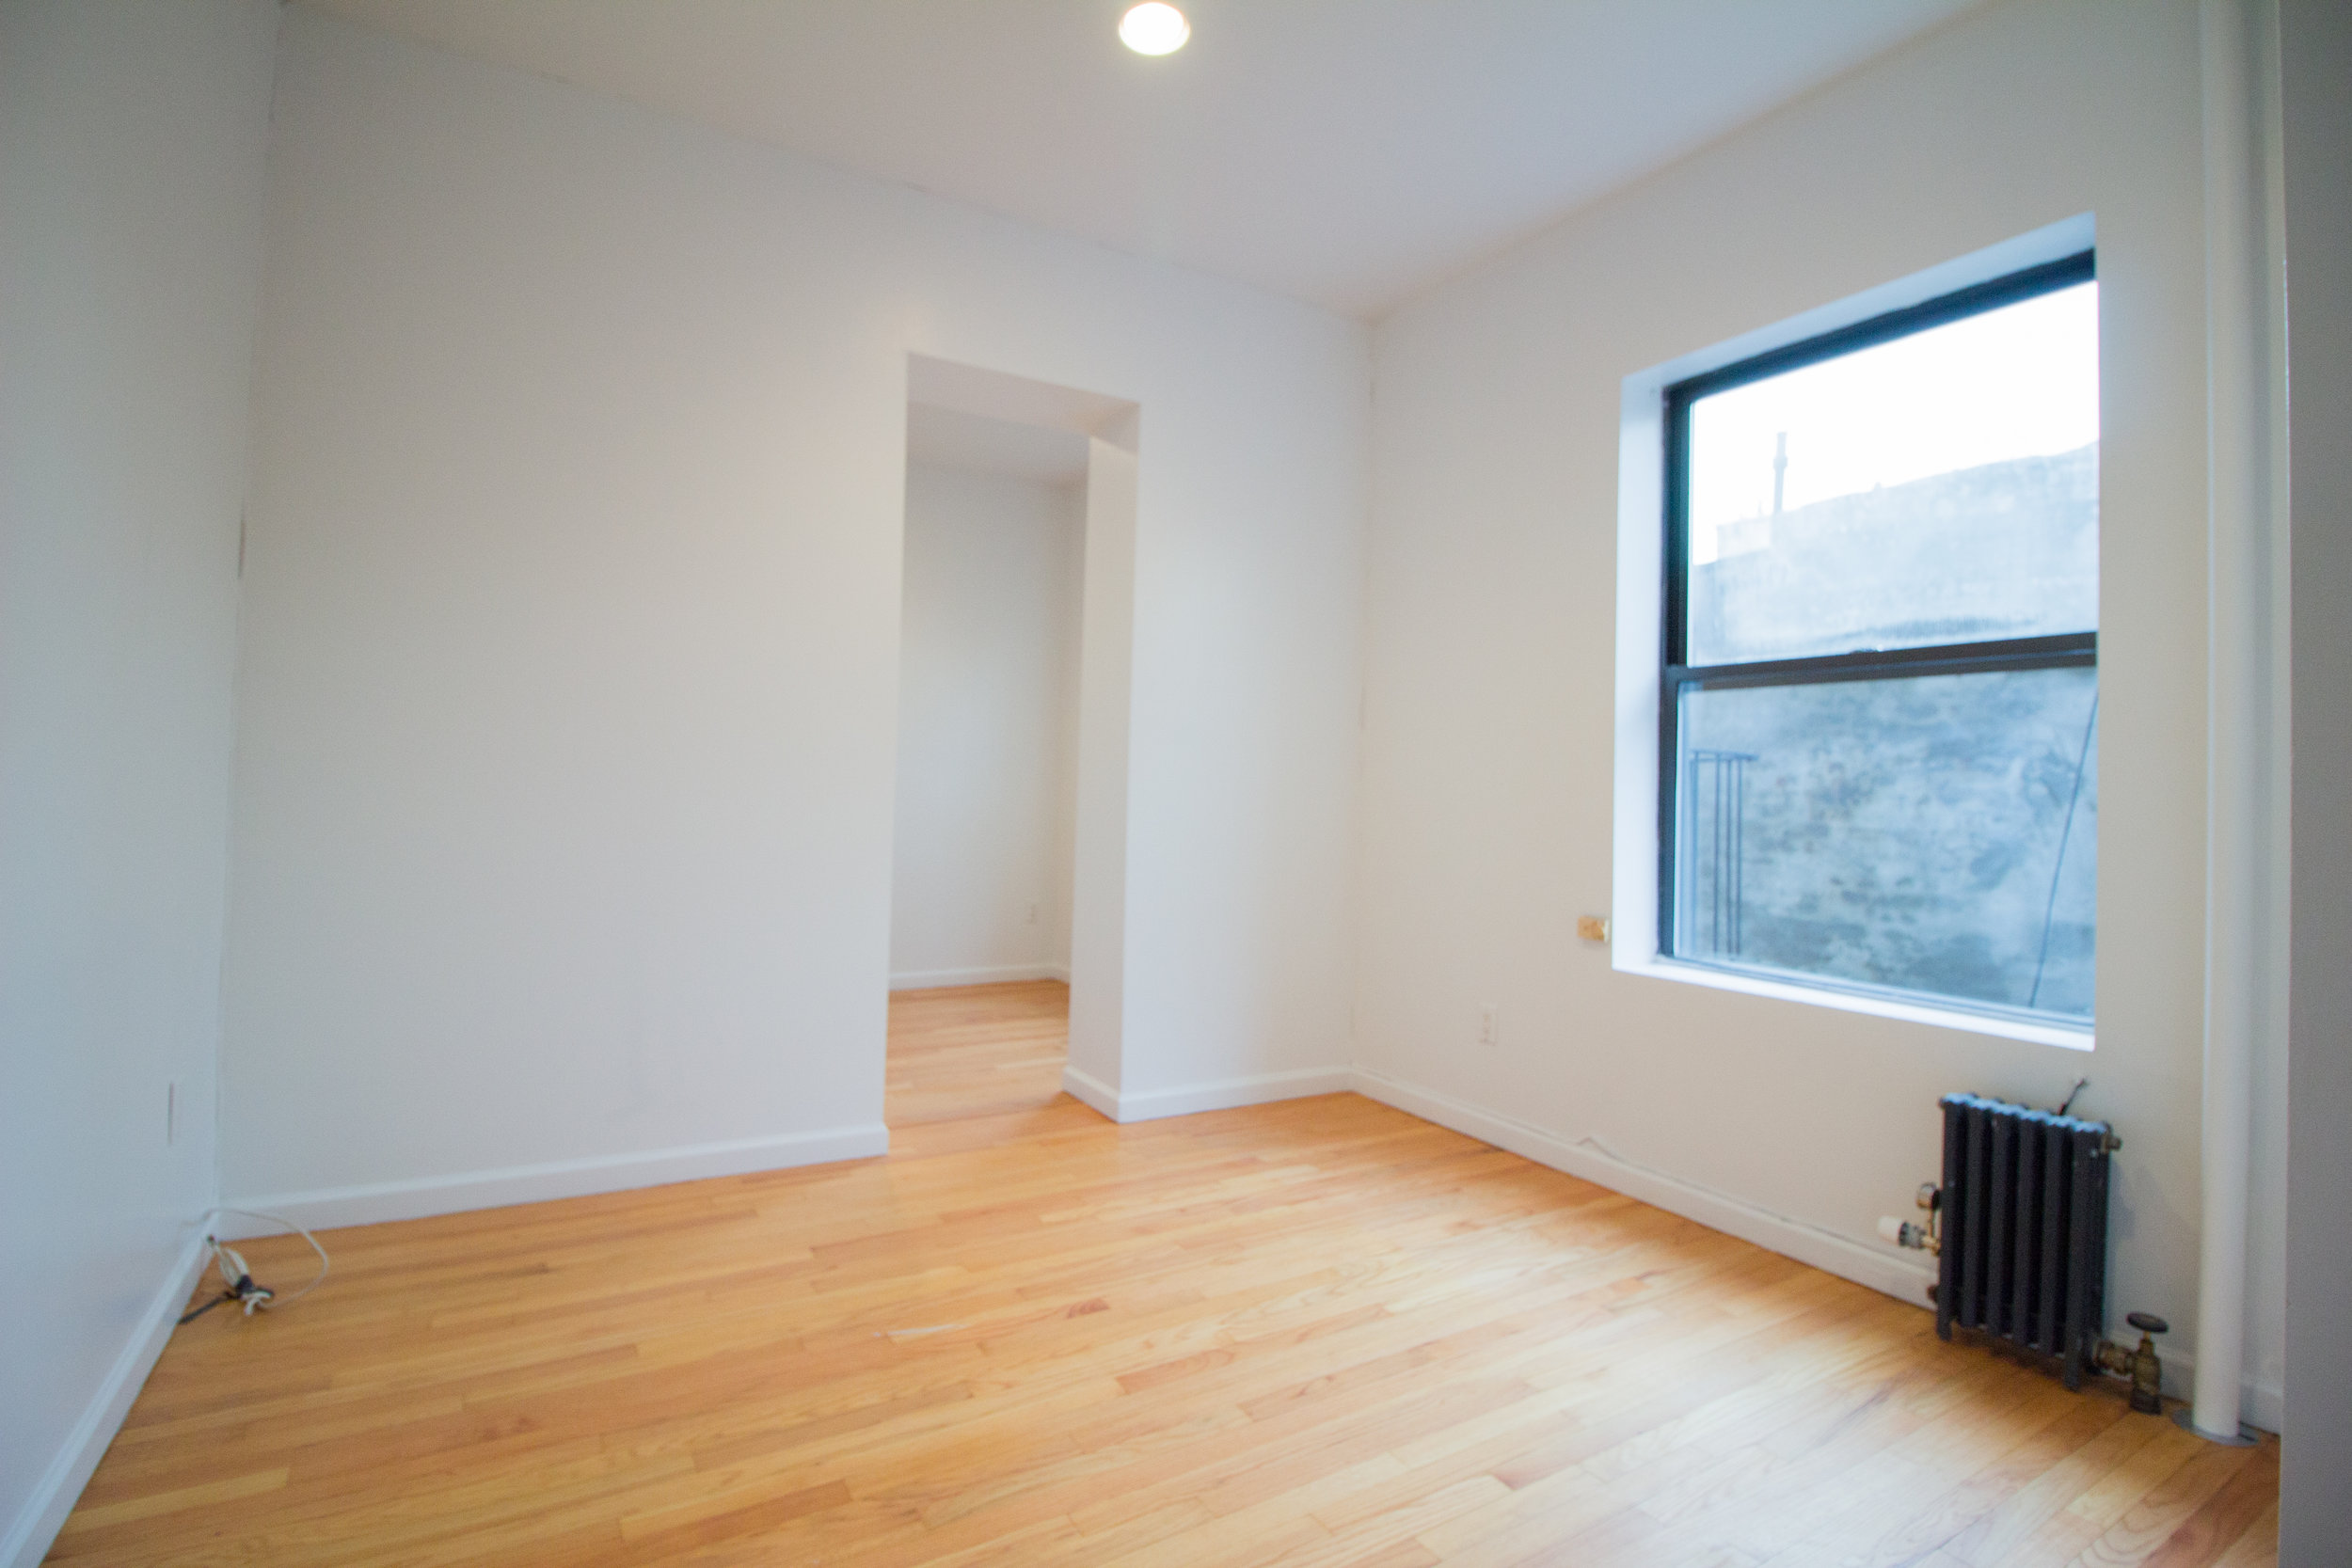 238-240 E 7 Street #23 - Renovated One Bedroom East Village!Sunny one bedroom home offers separate kitchen, windowed bathroom and spacious bedroom. Located in a walk up building in east village. Close to public transportation, cafes and shopping. Rent: $2,150 /monthTerms: 12 - 12 MonthsAvailable: Immediate